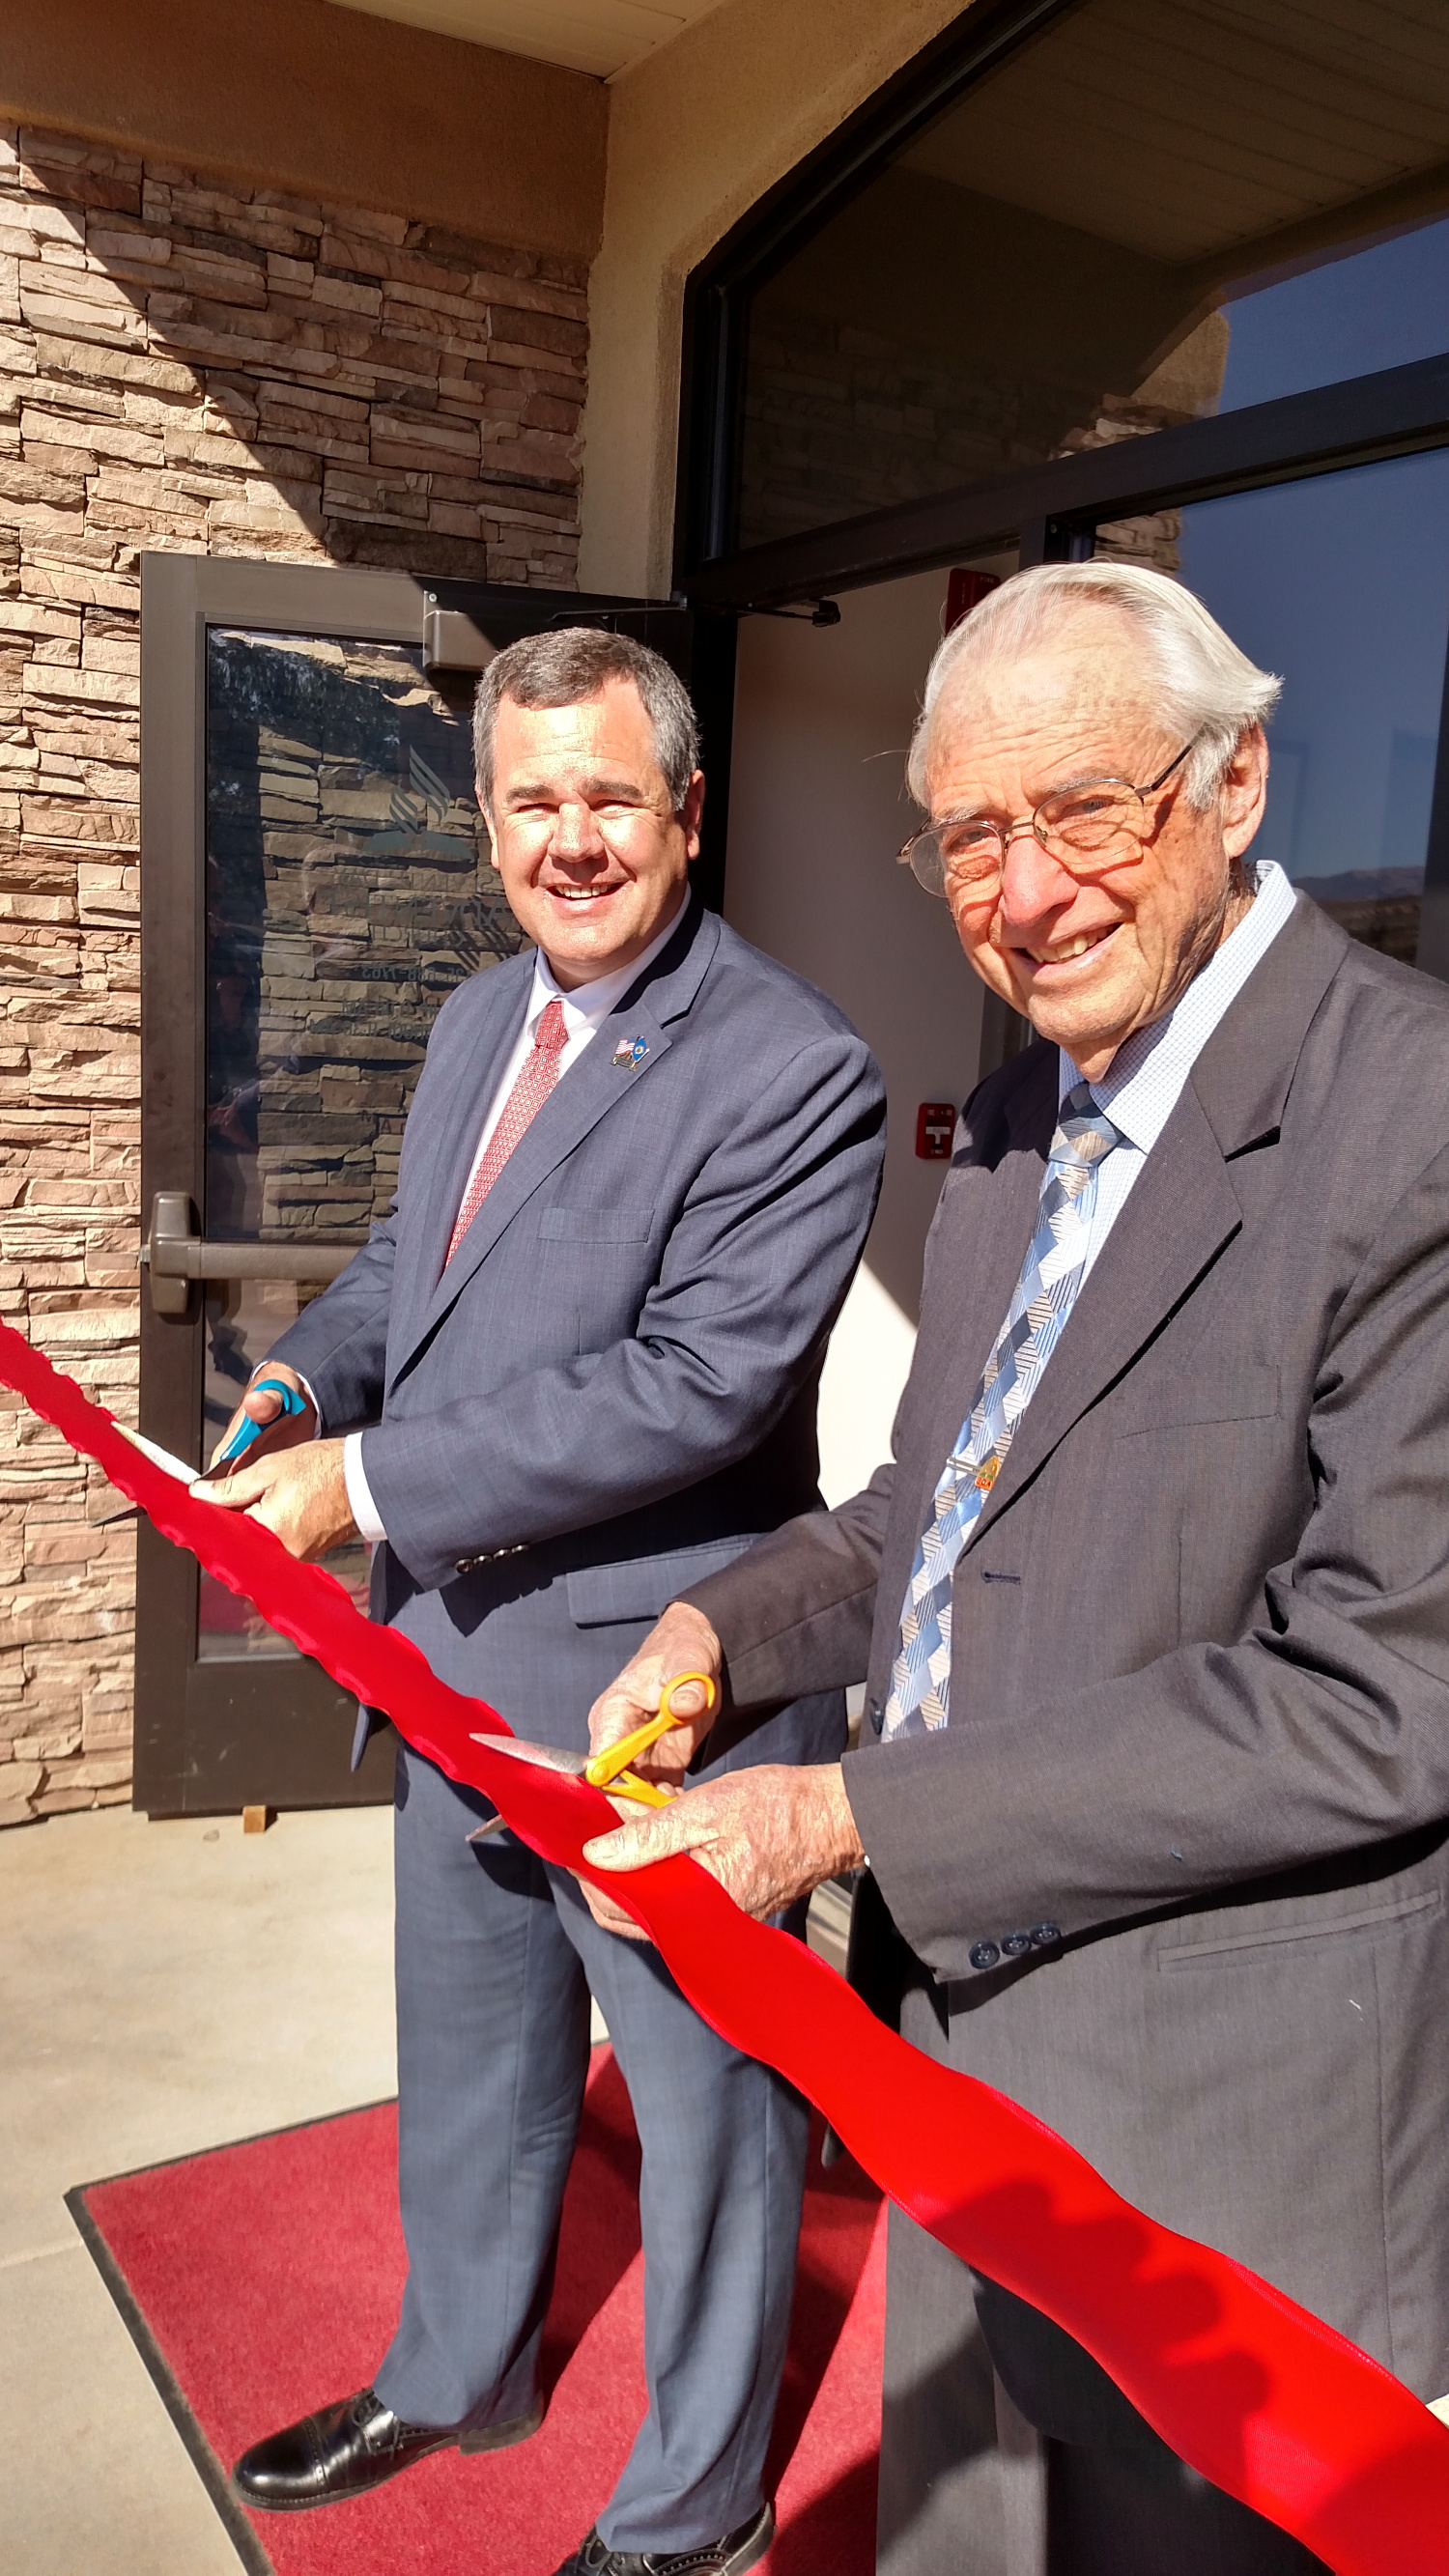 St. George Mayor Jon Pike and Pastor Dan Walter cut the ribbon in celebration of the Red Cliffs Seventh-day Adventist Church facility, located at 1165 W. Silicon Circle in St. George, Utah, Nov. 8, 2016 | Photo courtesy of Robert Ford, St. George News